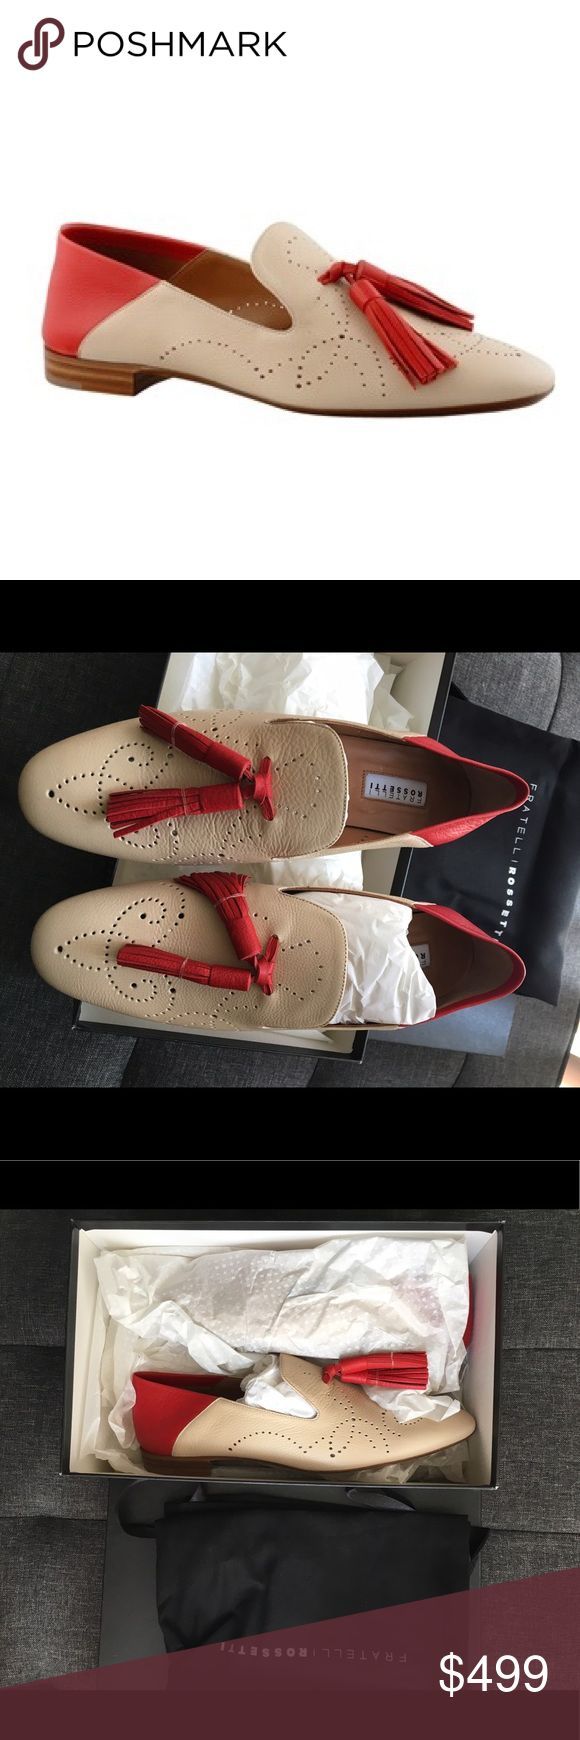 Beautiful italian leather loafers NWT. Brand new beautiful Italian loafers with tassels and decorative perforations. Made from soft dual-color calfskin with contrasting heel and tassels. Leather sole.🚫NO TRADES🚫📦FAST SHIPPER📦❗️Reduced price for 🅿️🅿️❗️ Fratelli Rossetti Shoes Flats & Loafers